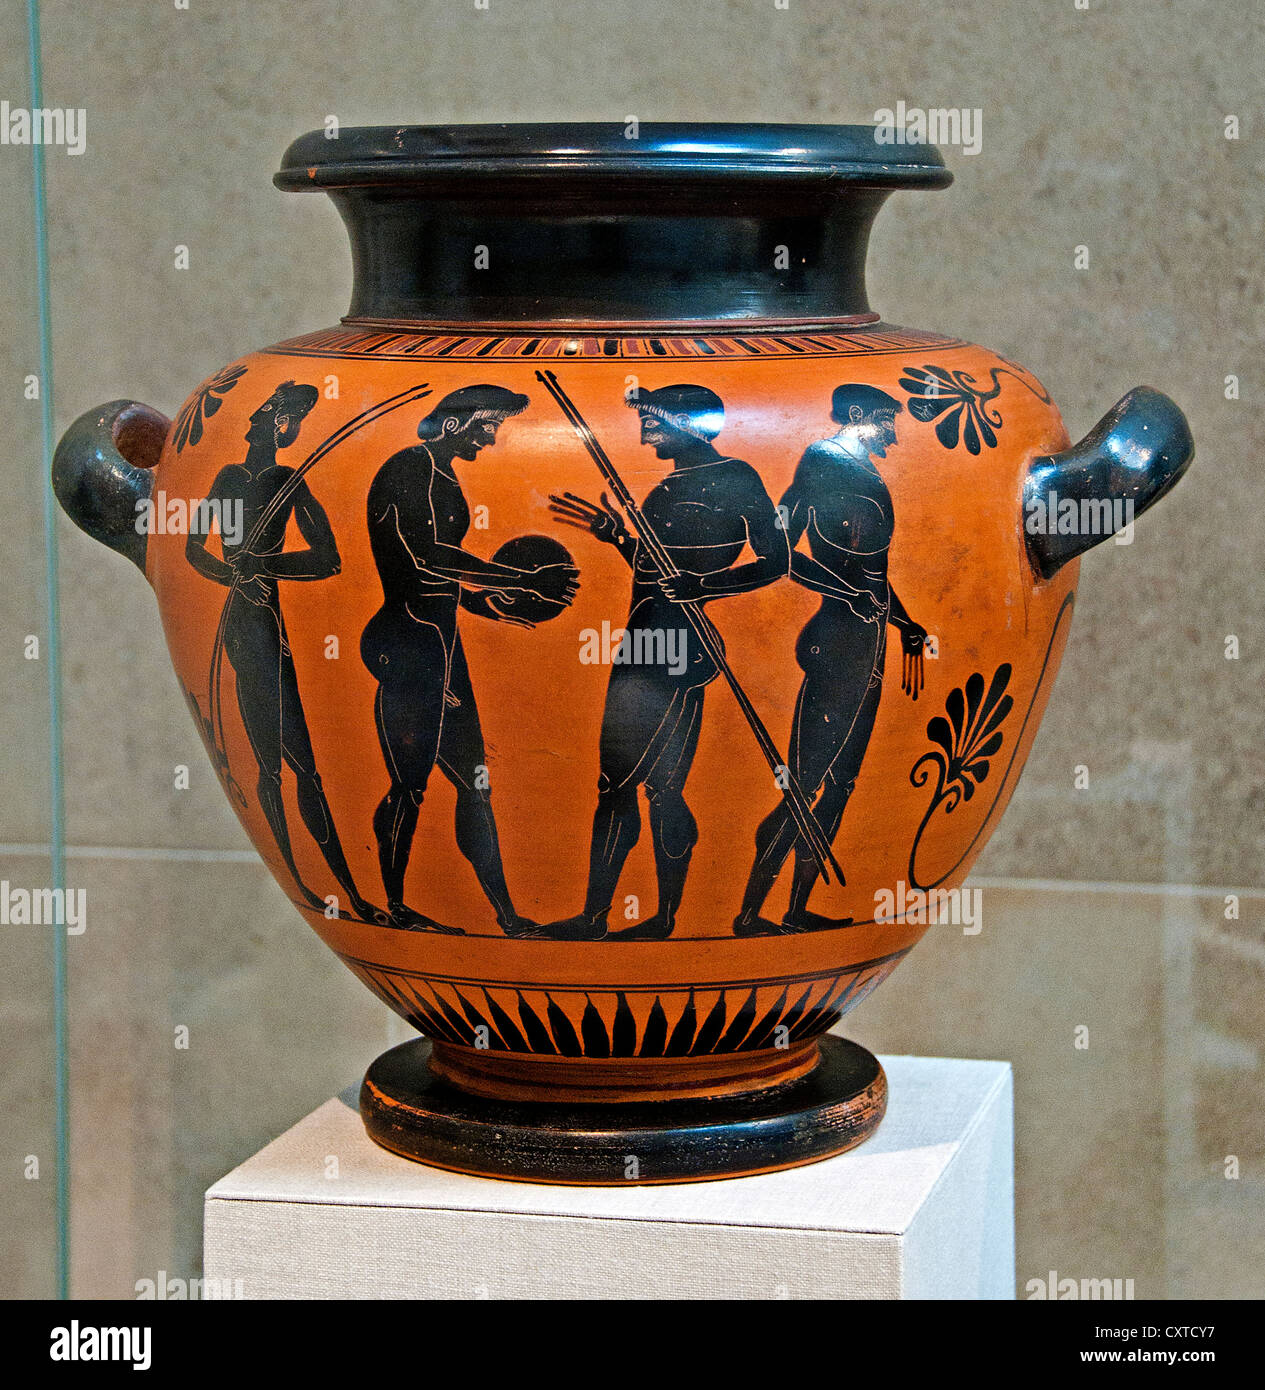 Terracotta stamnos storage jar by  Antimenes Painter  Archaic 525–500 B.C. Greek Attic athletes Athletics Athens - Stock Image